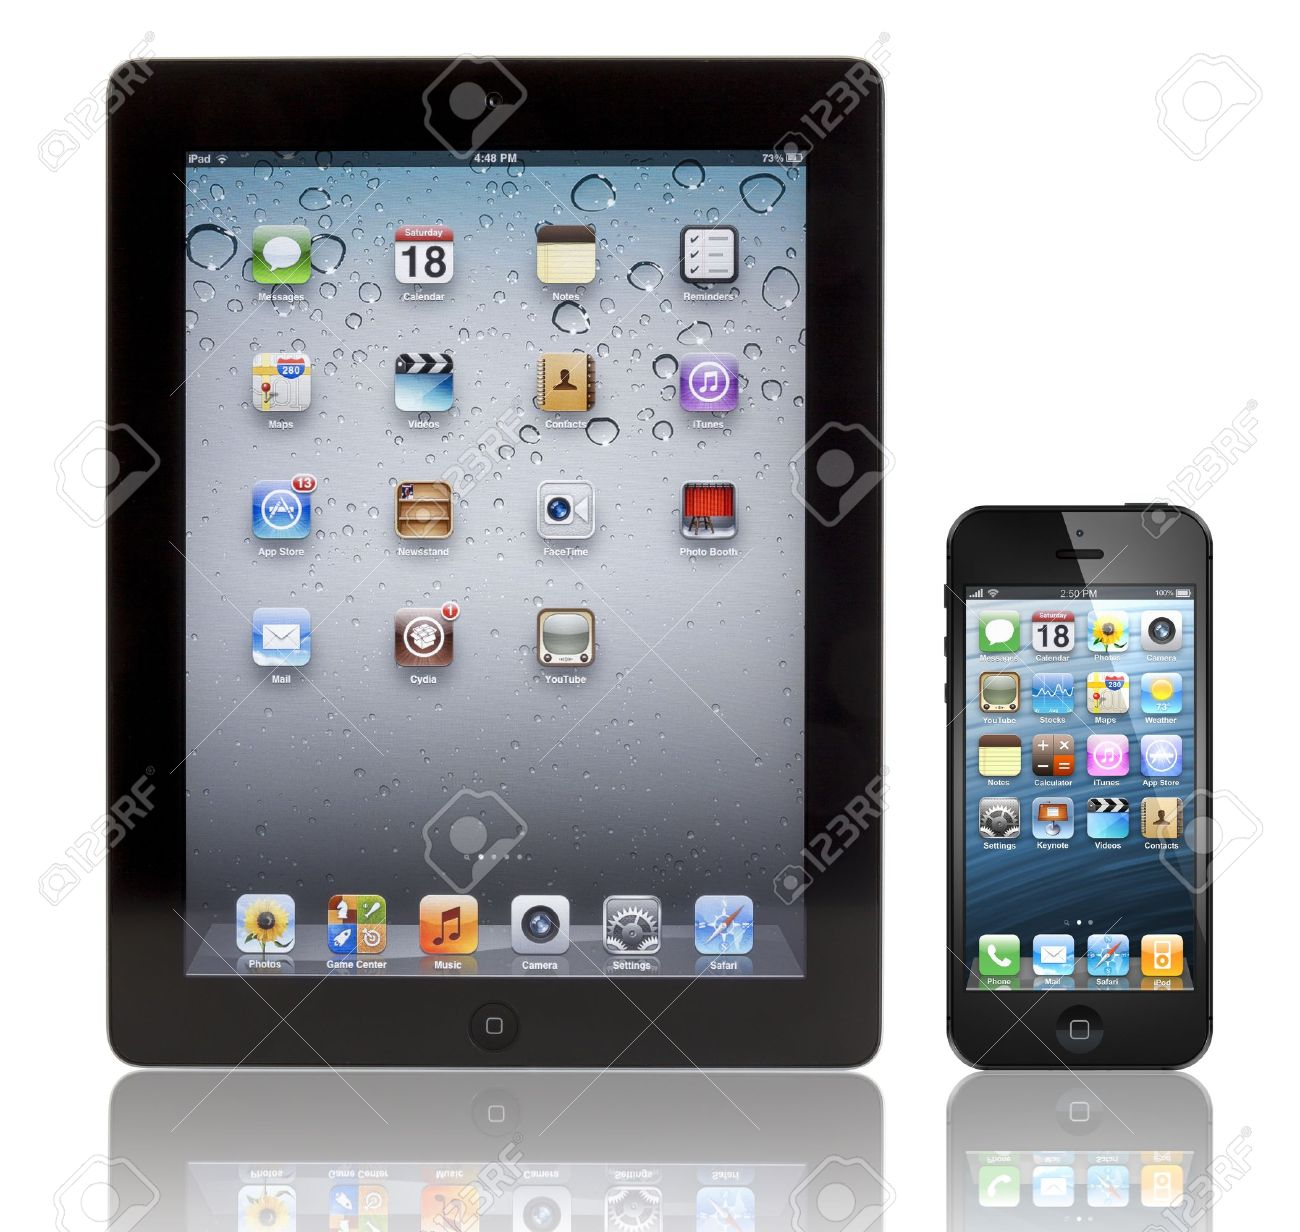 A Black Apple Iphone 5 In Front Of A Black Apple Ipad 3 Tablet